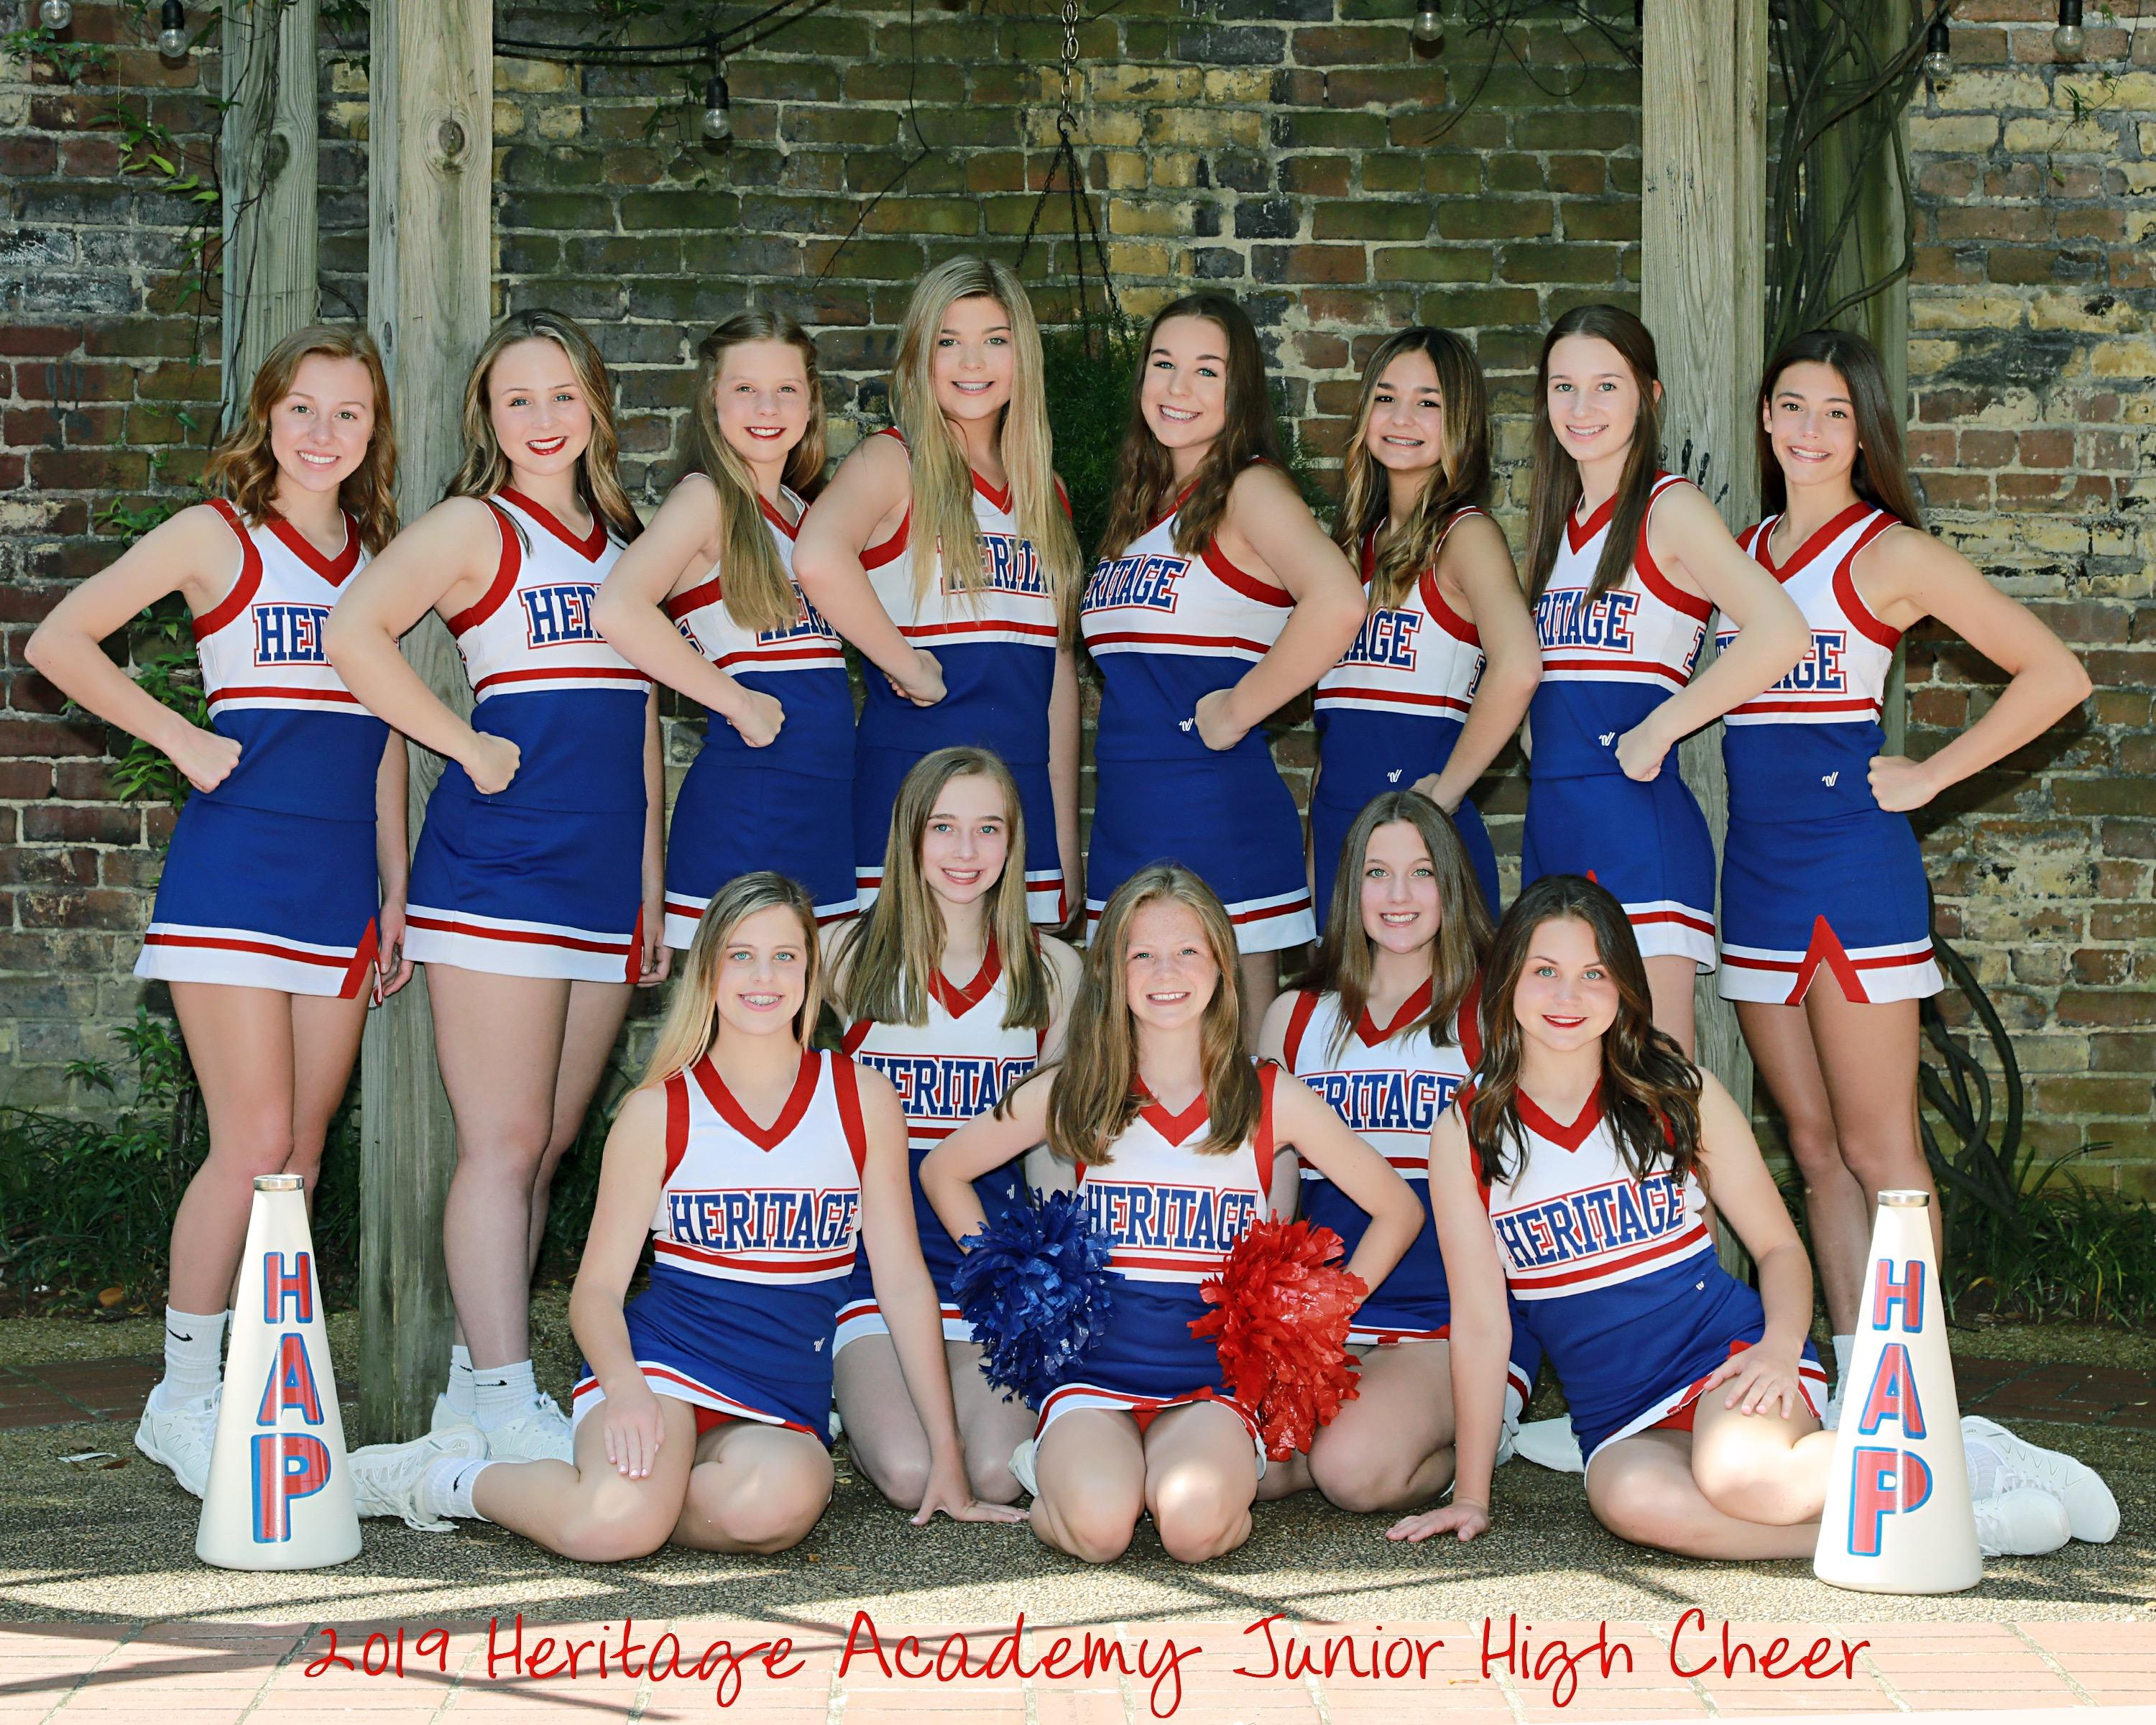 Cheerleading | Cheerleading on science map, baseball map, hip hop map, hiking map, curling map, cross country map, basketball map, diving map, triathlon map,